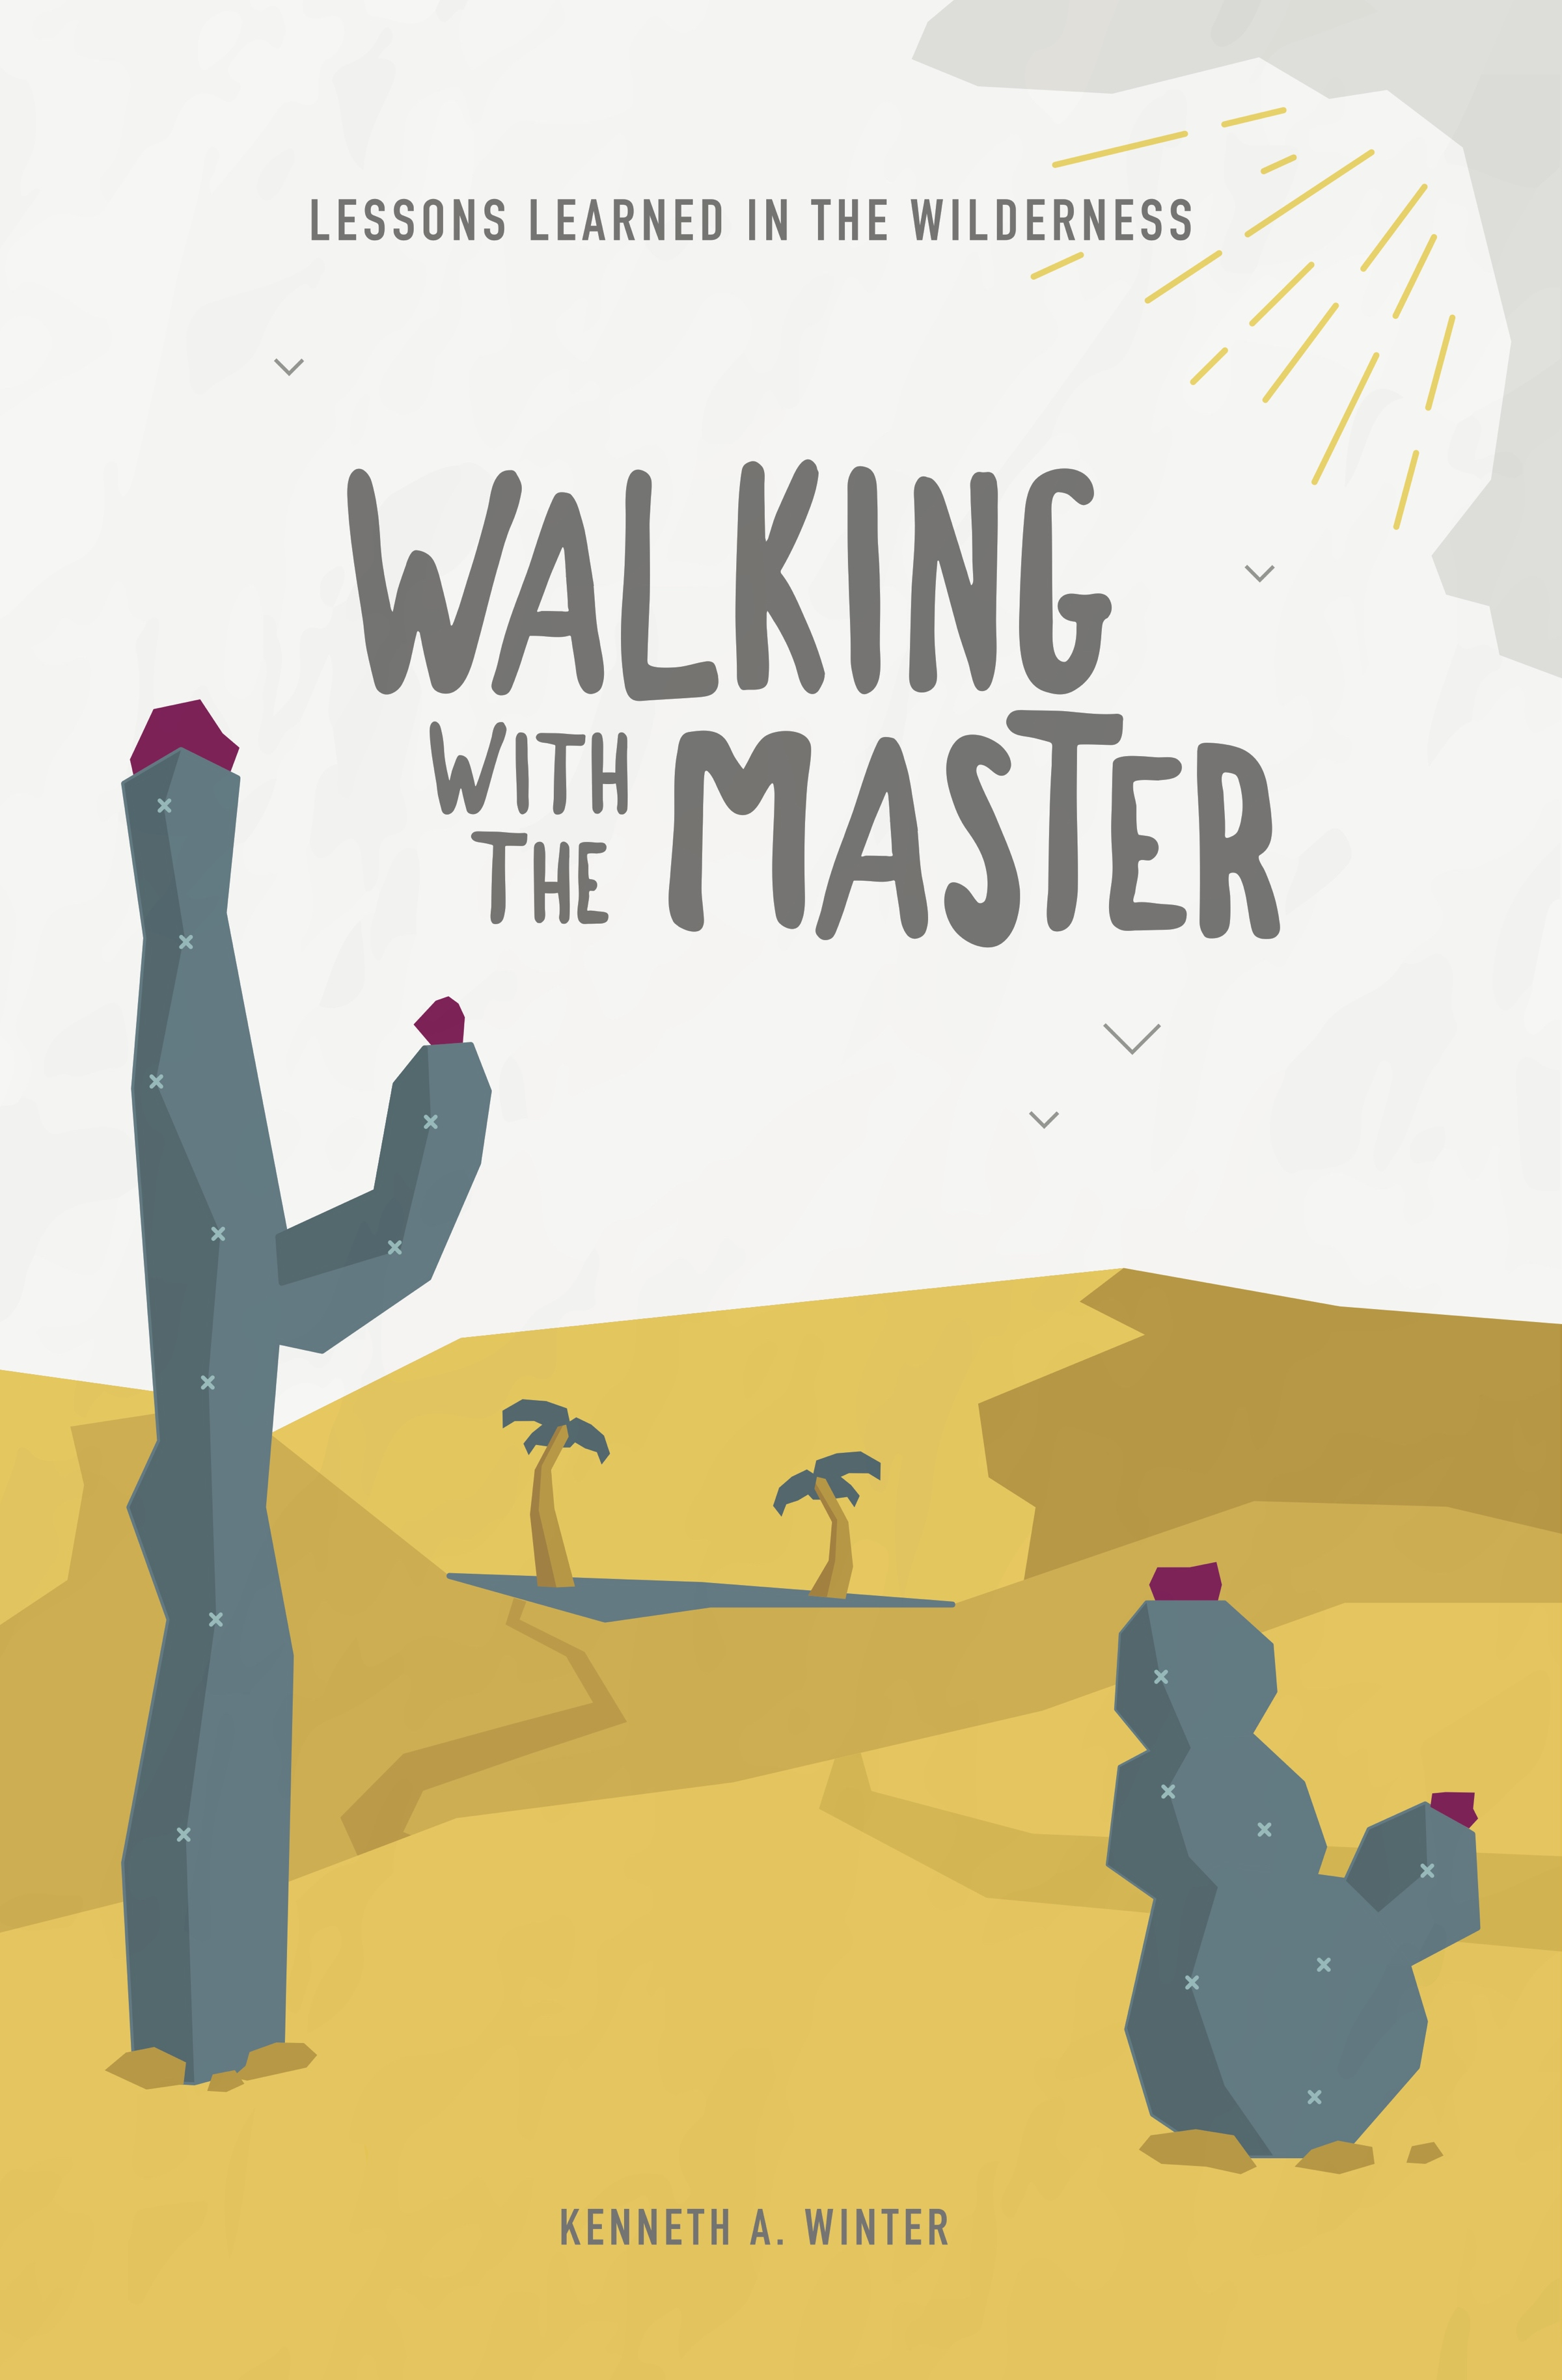 Walking-With-The-Master-iBooks.jpg